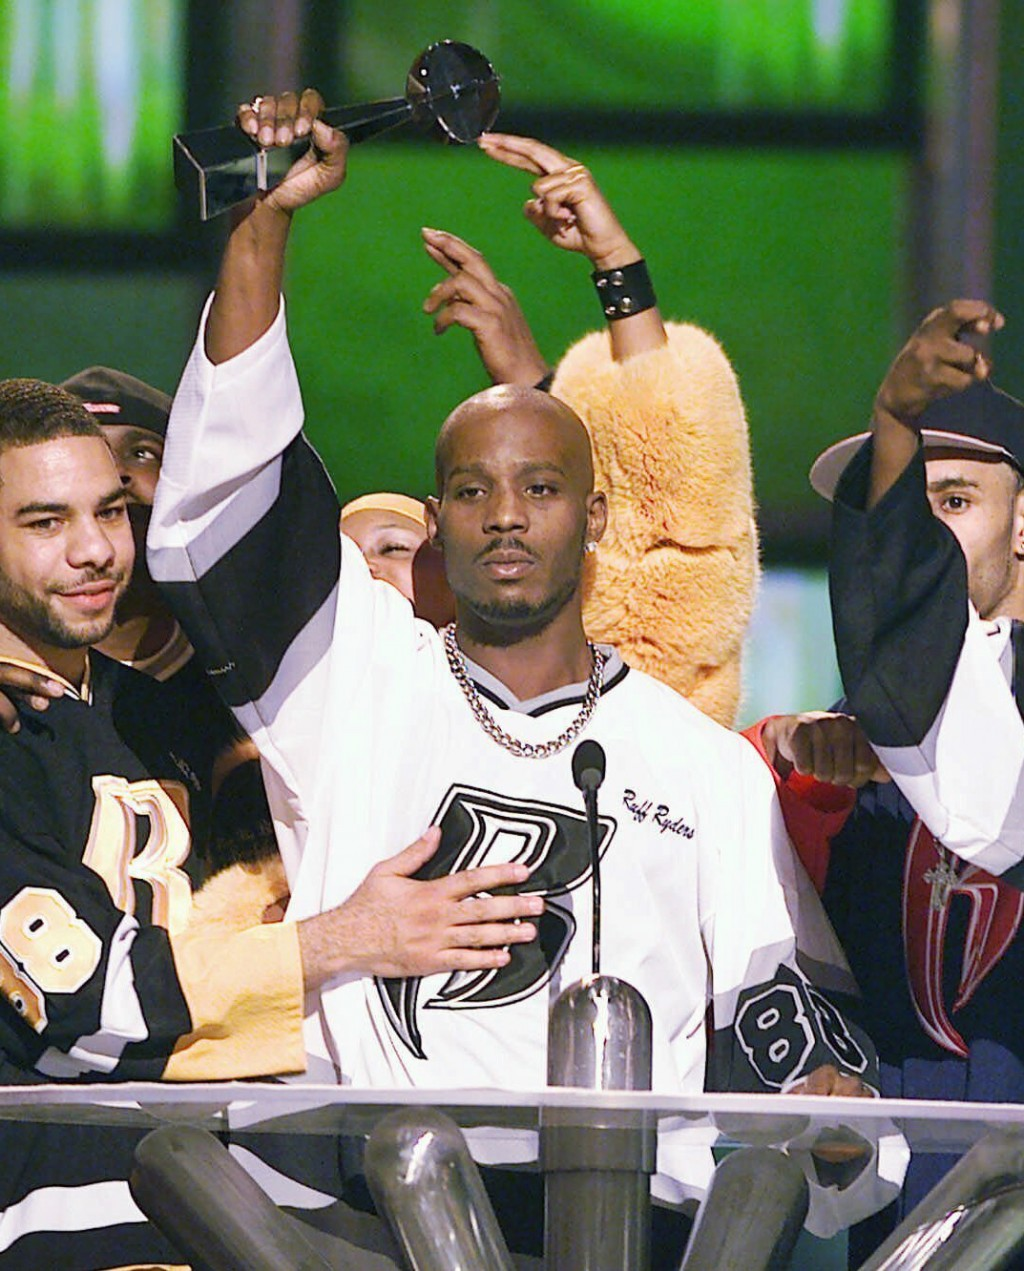 FILE - DMX, center, accepts the R&B Album Artist of the Year during the 1999 Billboard Music Awards in Las Vegas, on Dec. 8, 1999. The family of rappe...